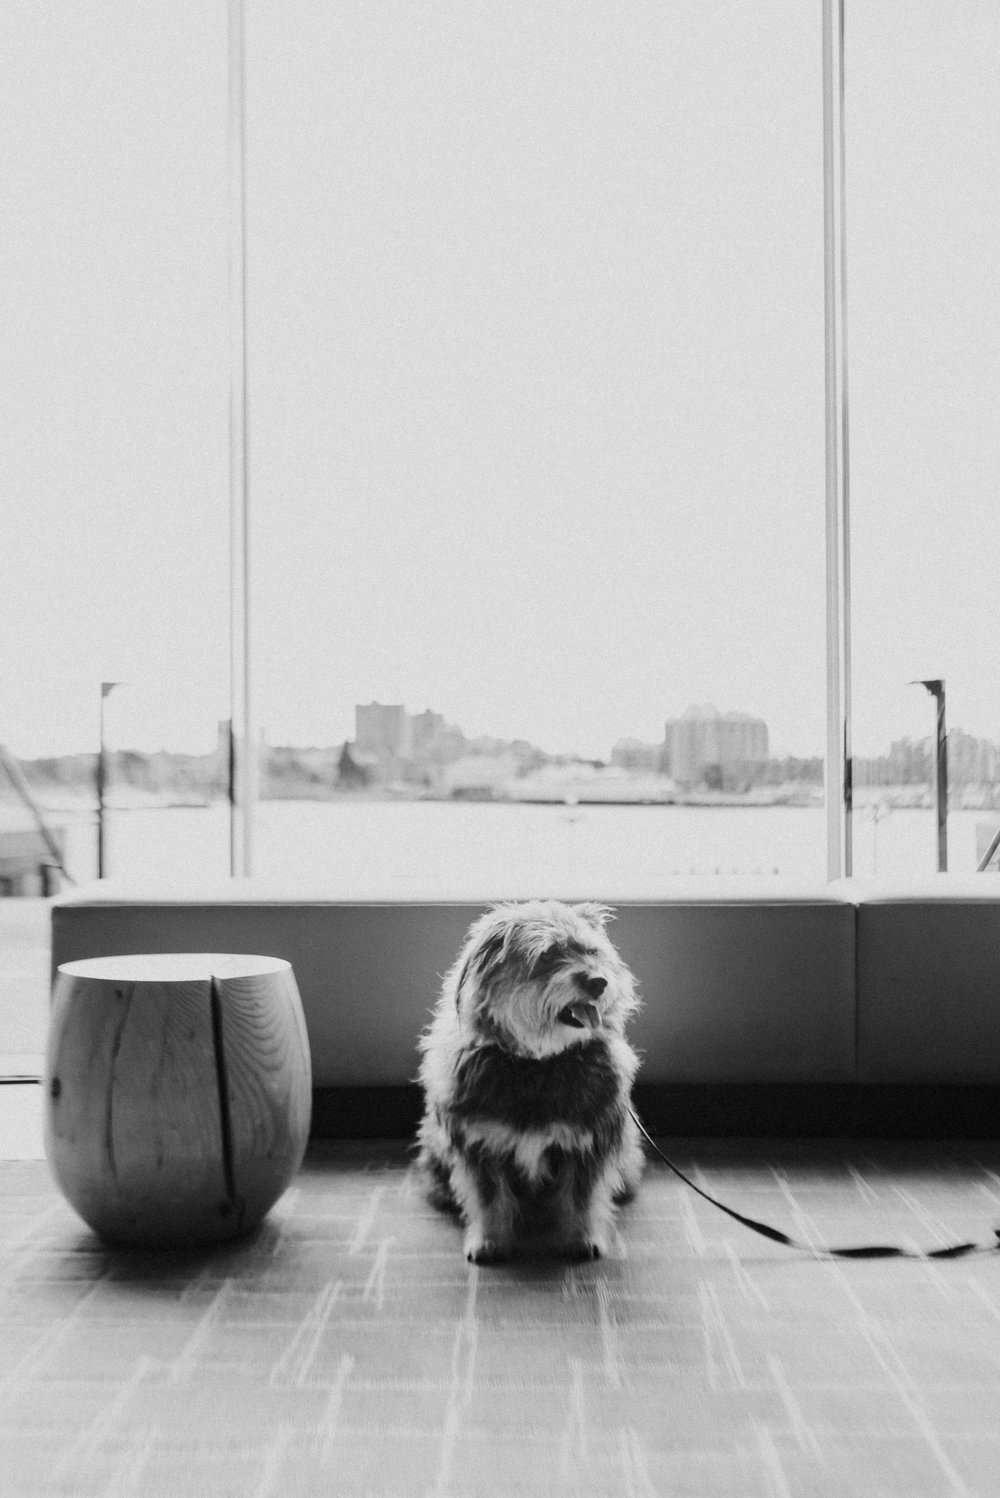 The obligitory artsy black and white shot. Mum was inspired by the pretty light! Here I am sitting in the lobby with my pops. I've been getting a lot of head pats and ear rubs!